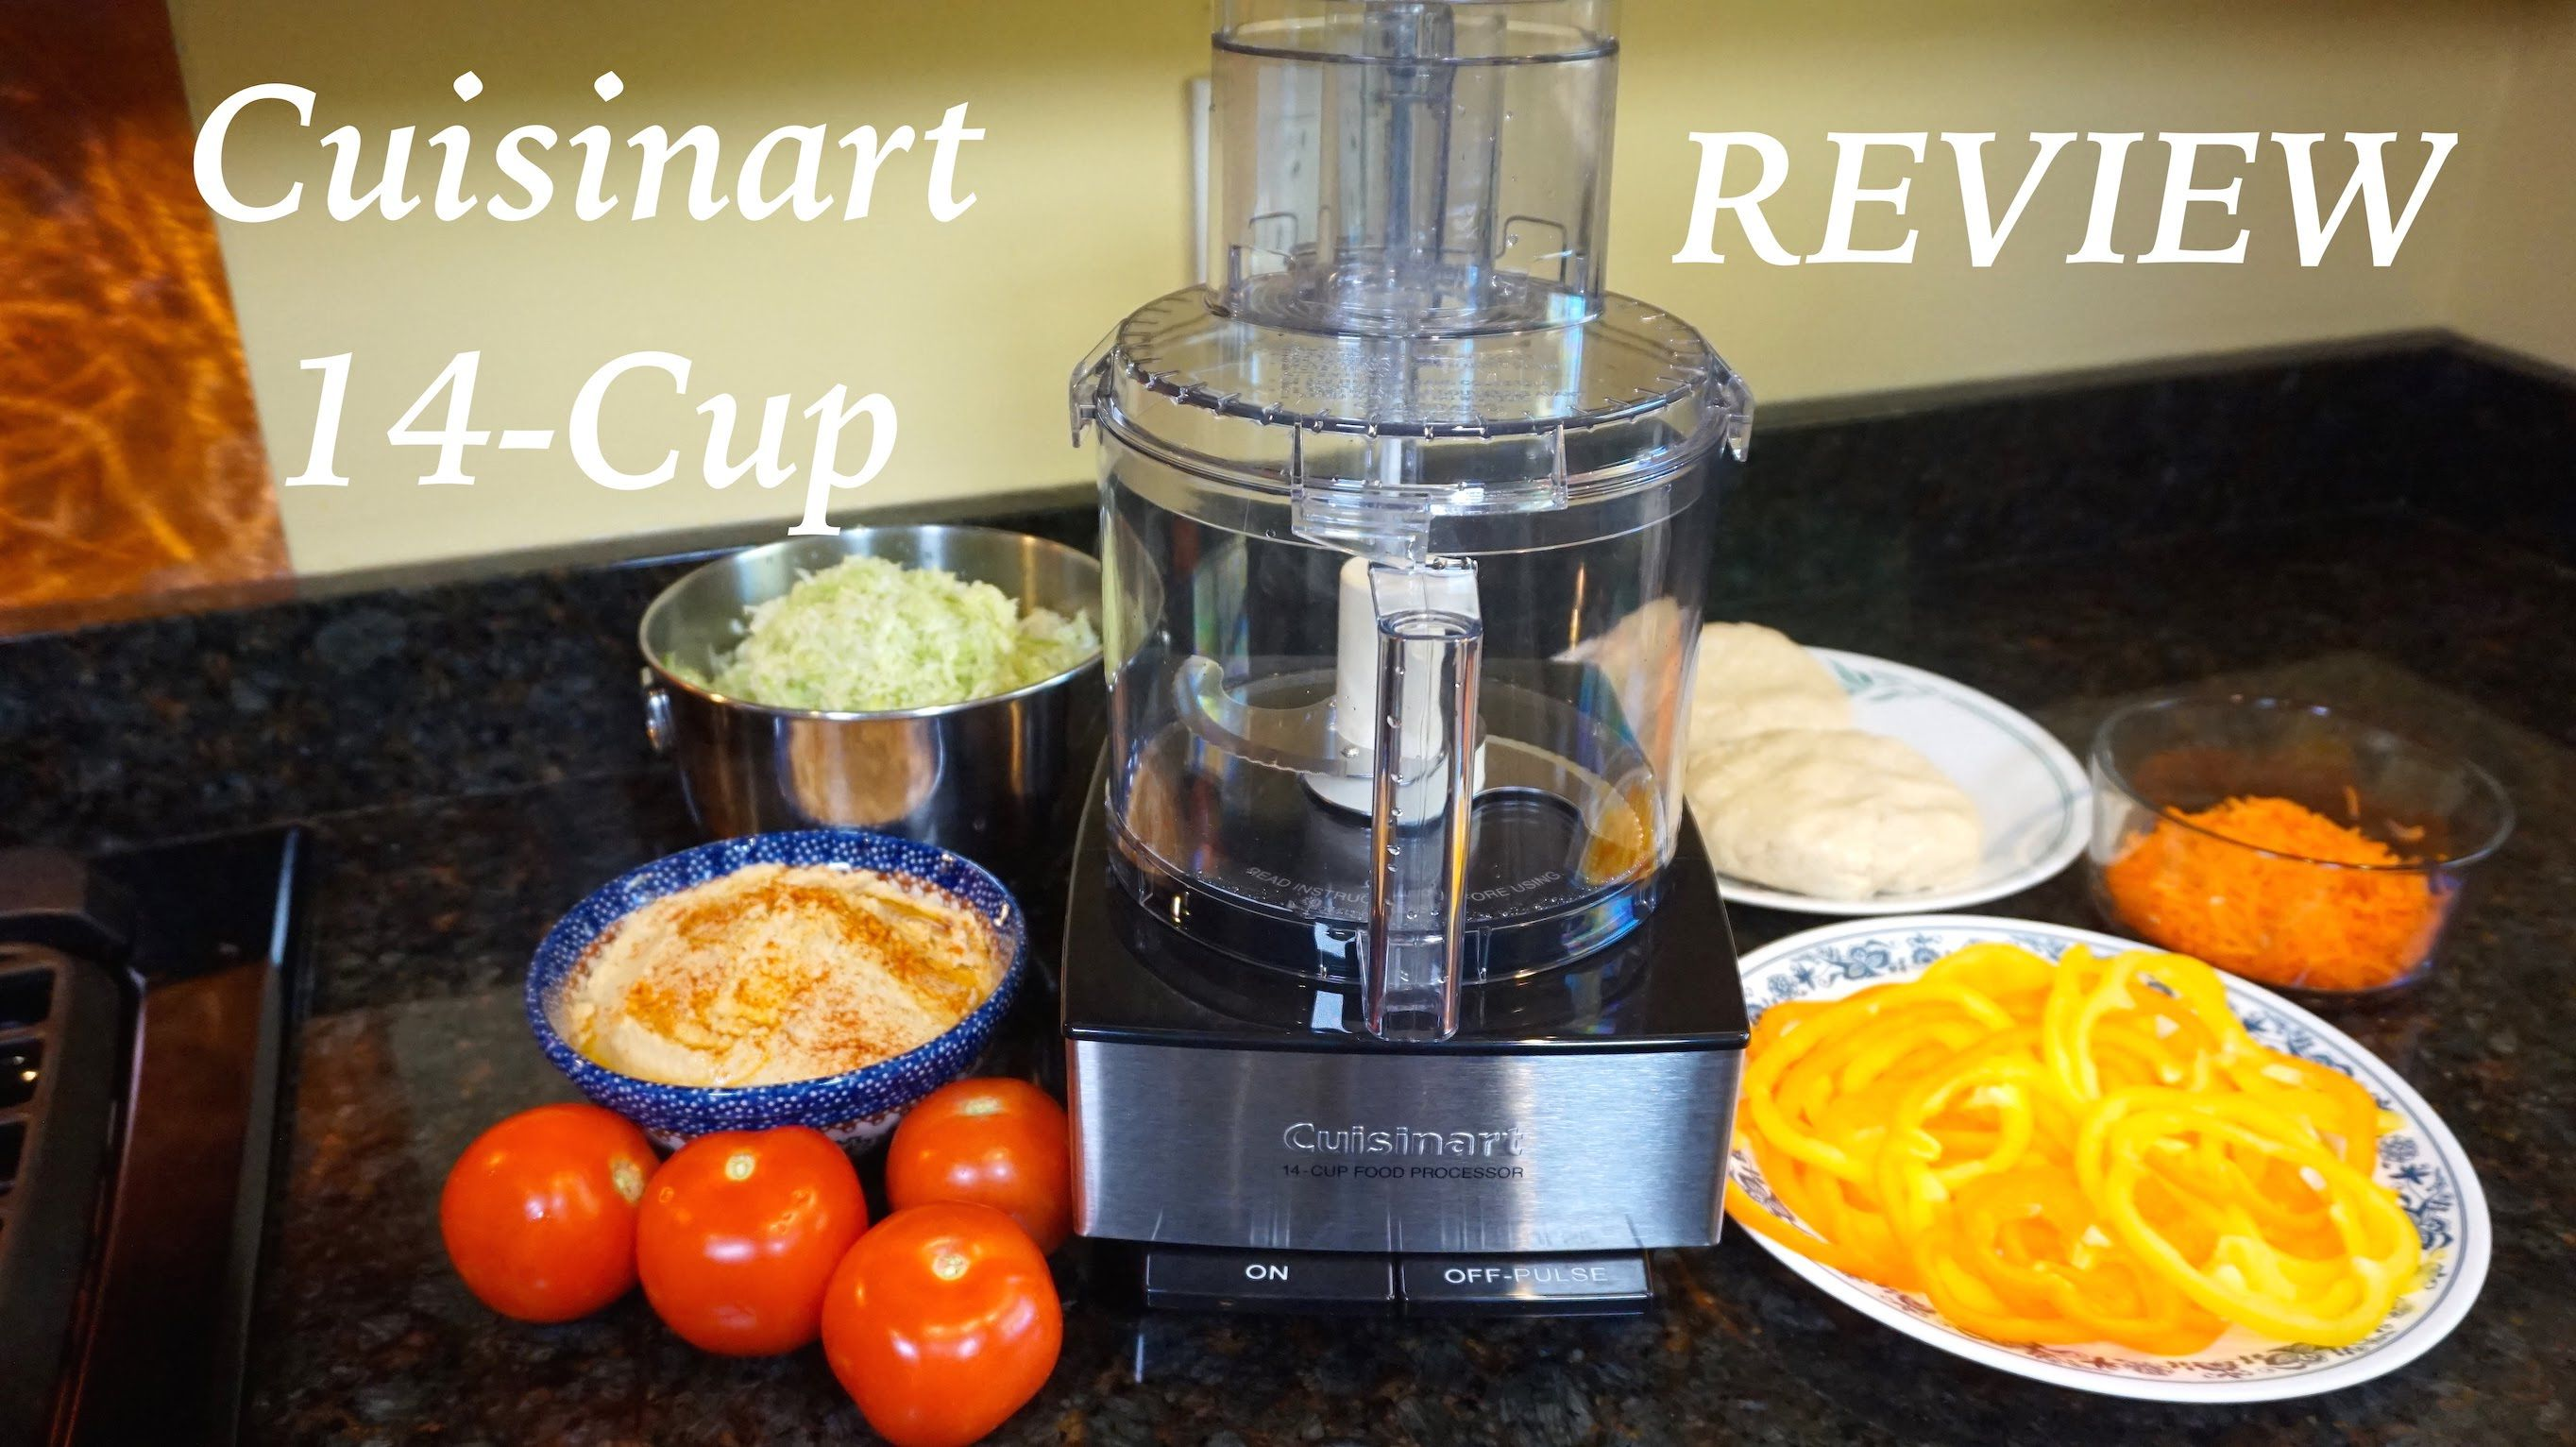 Cuisinart 14 cup food processor review youtube kitchen cuisinart 14 cup food processor review youtube forumfinder Choice Image